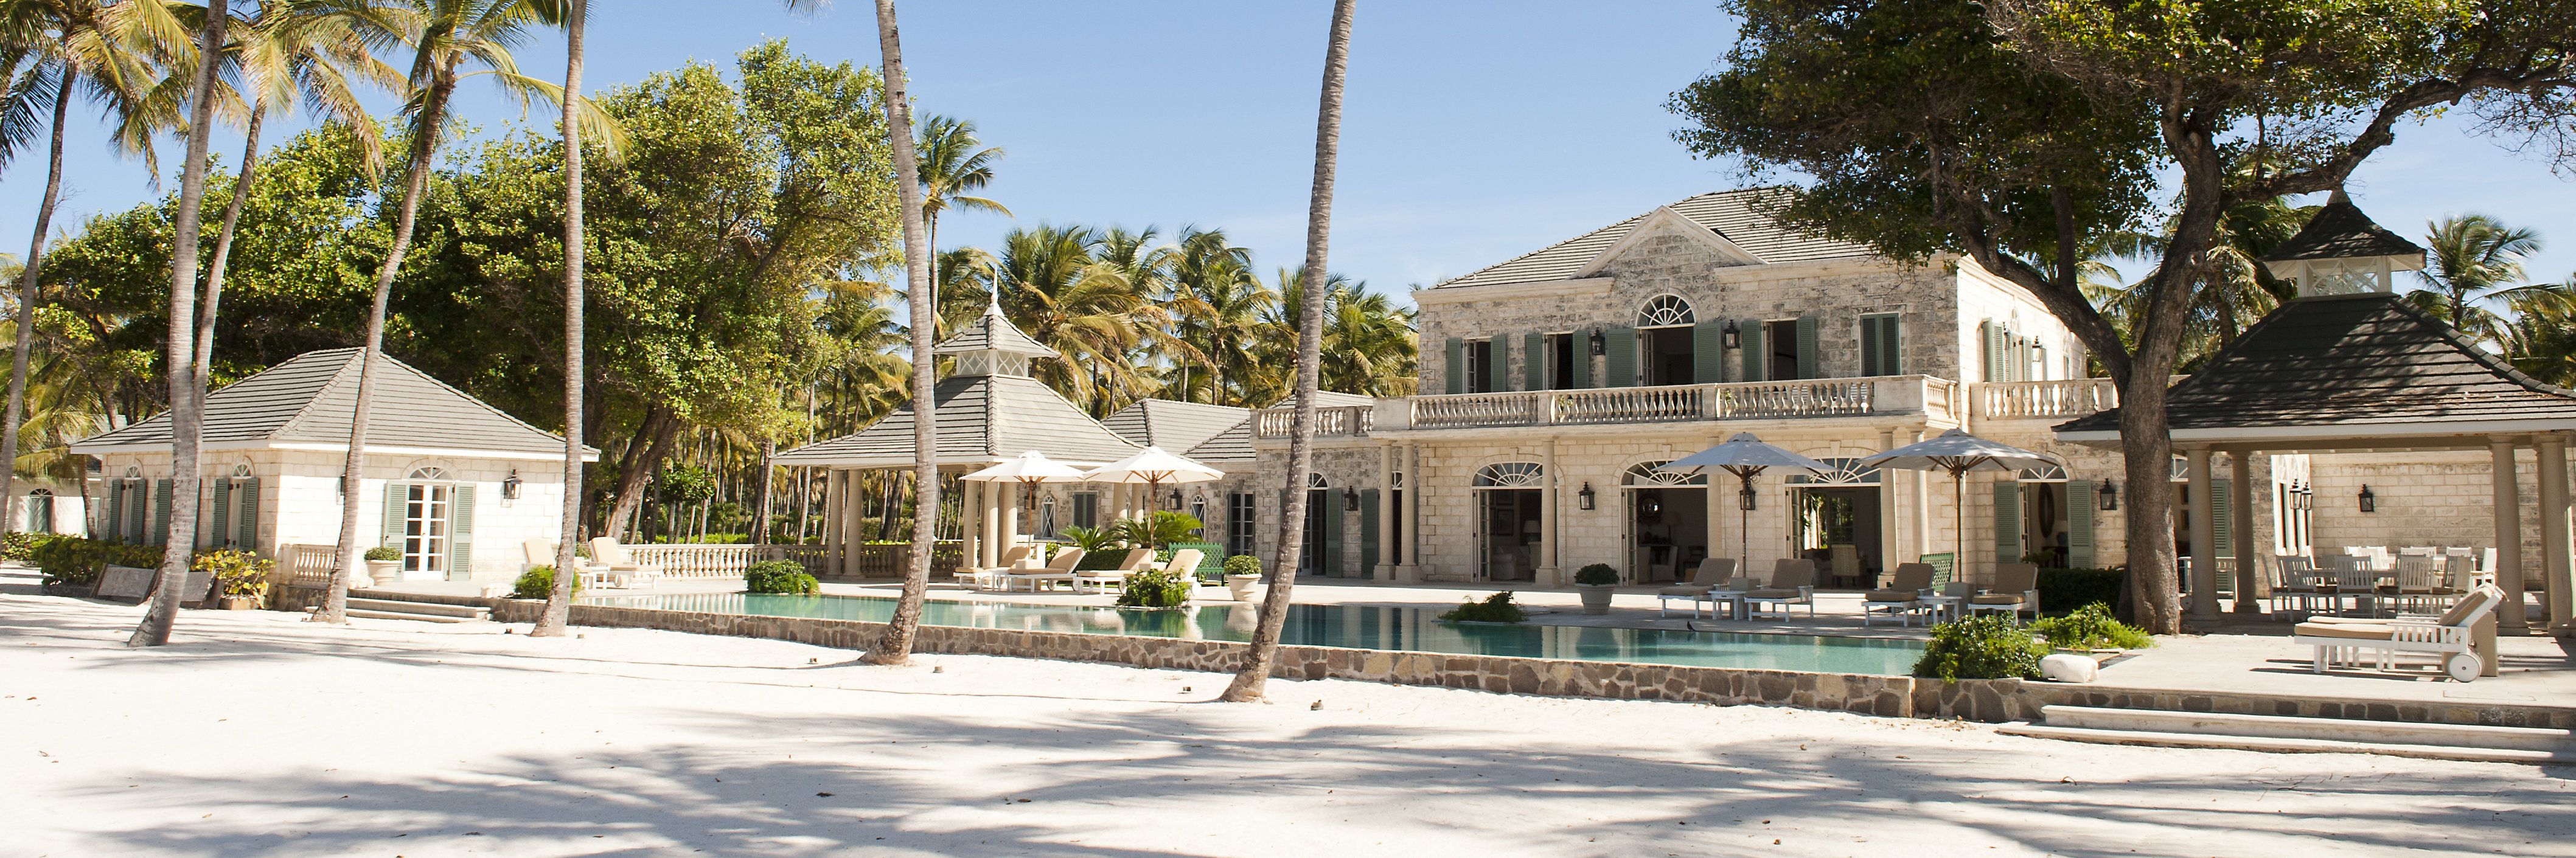 cotton-house-luxury-caribbean-hotel